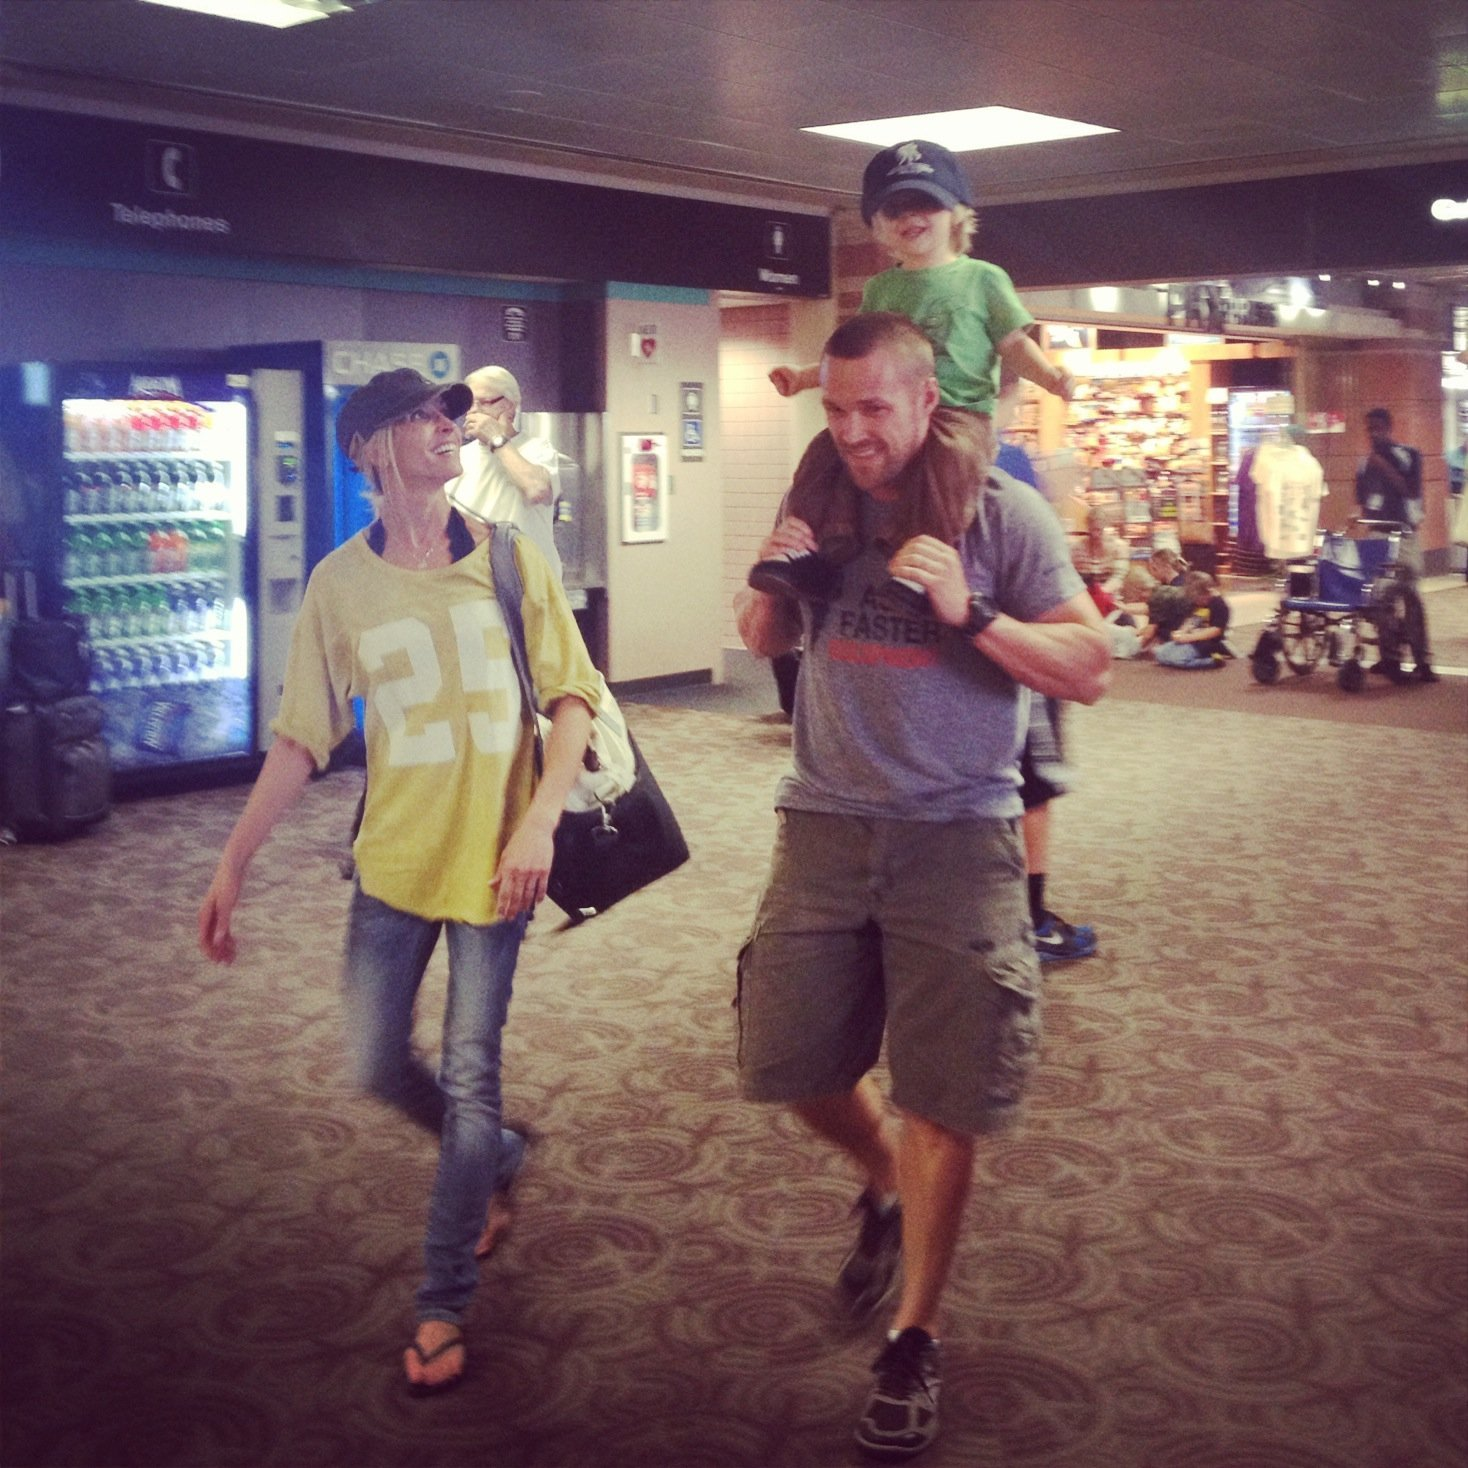 Chris, Cash and I celebrating  Walk to Work Day! Yes, we're in an airport!! Yes, we are walking to work!  - Learn more at https://heidipowell.net/1102